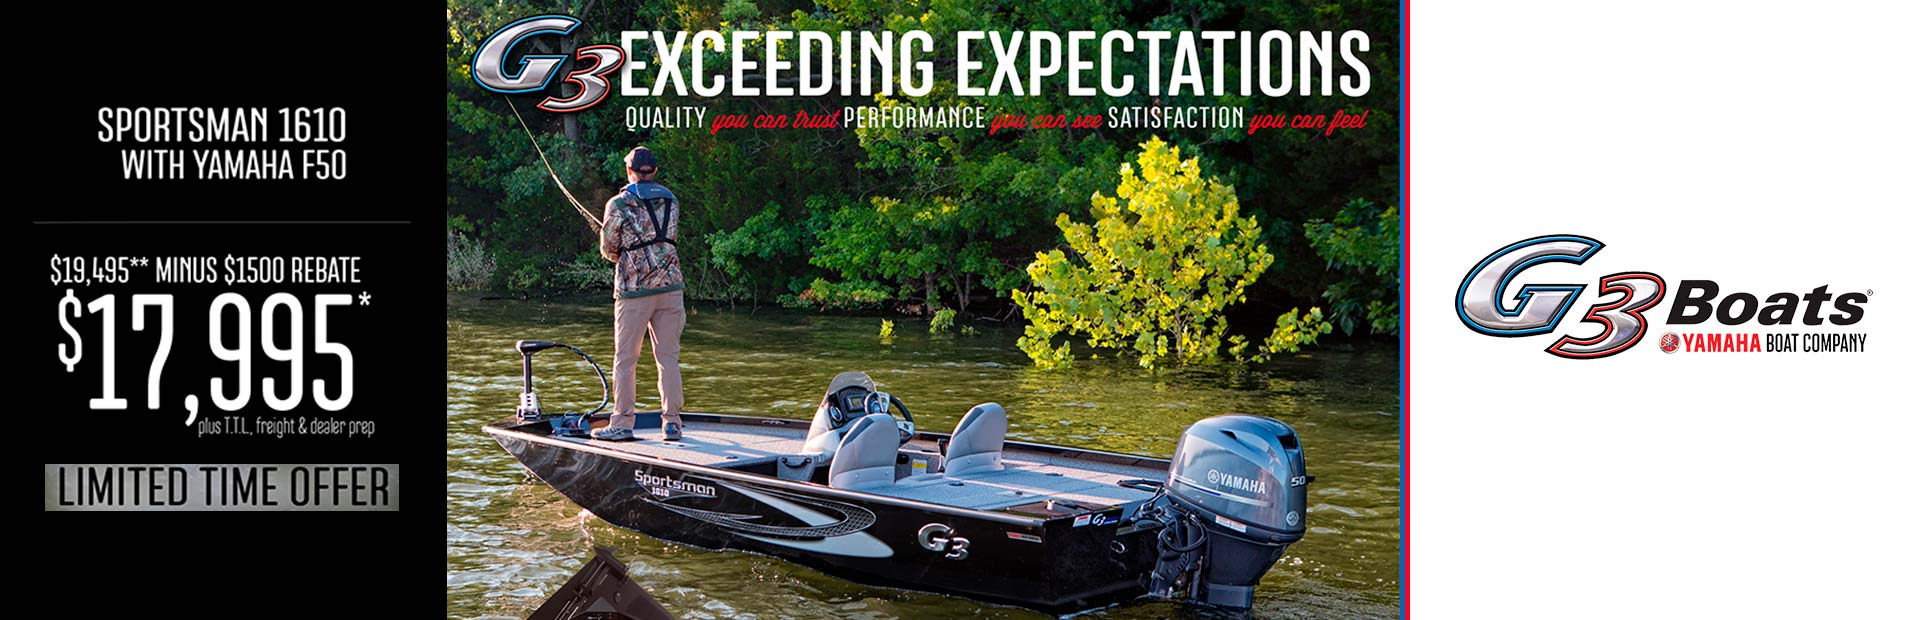 G3: G3 EXCEEDING EXPECTATIONS - SPORTSMAN 1610